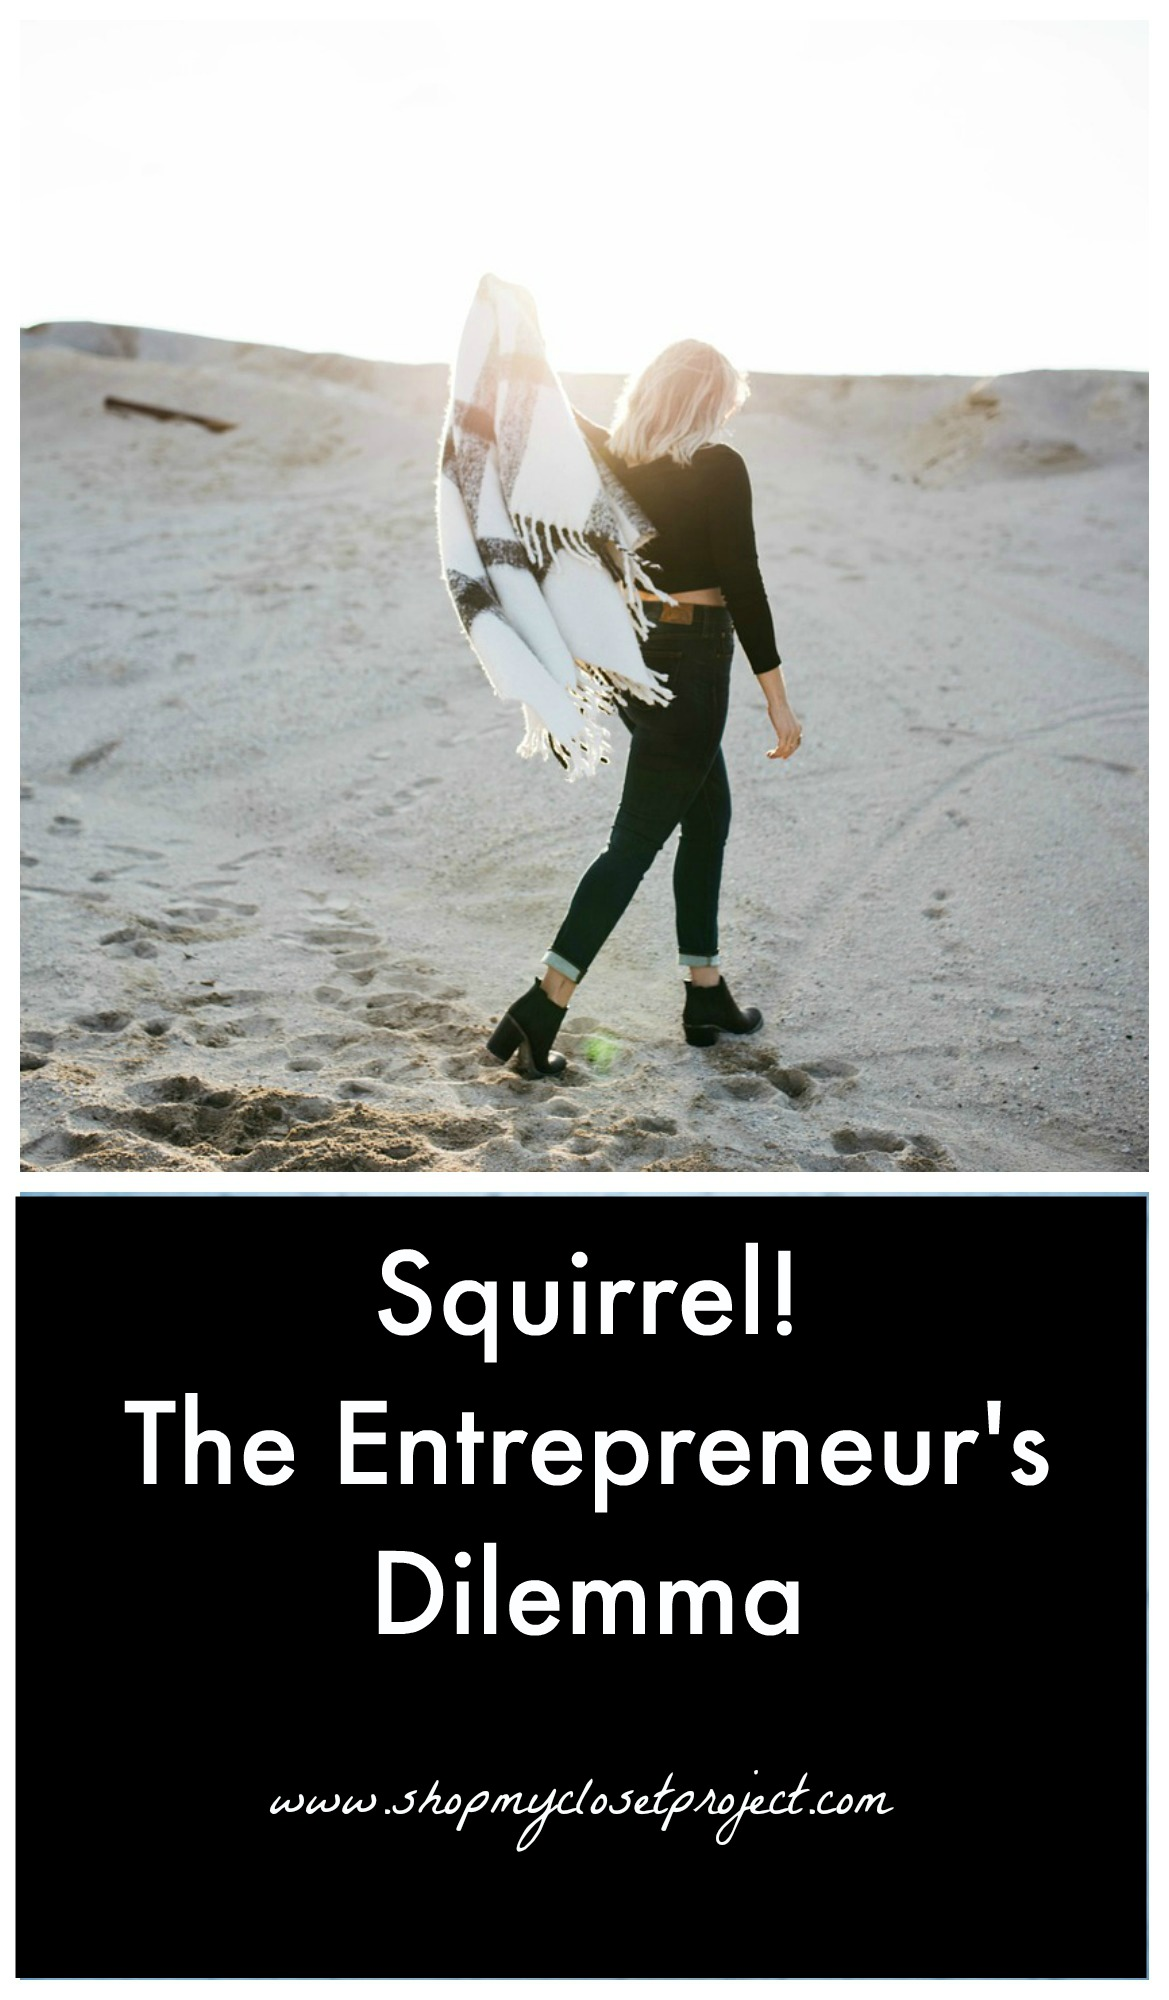 Squirrel! The Entrepreneur's Dilemma